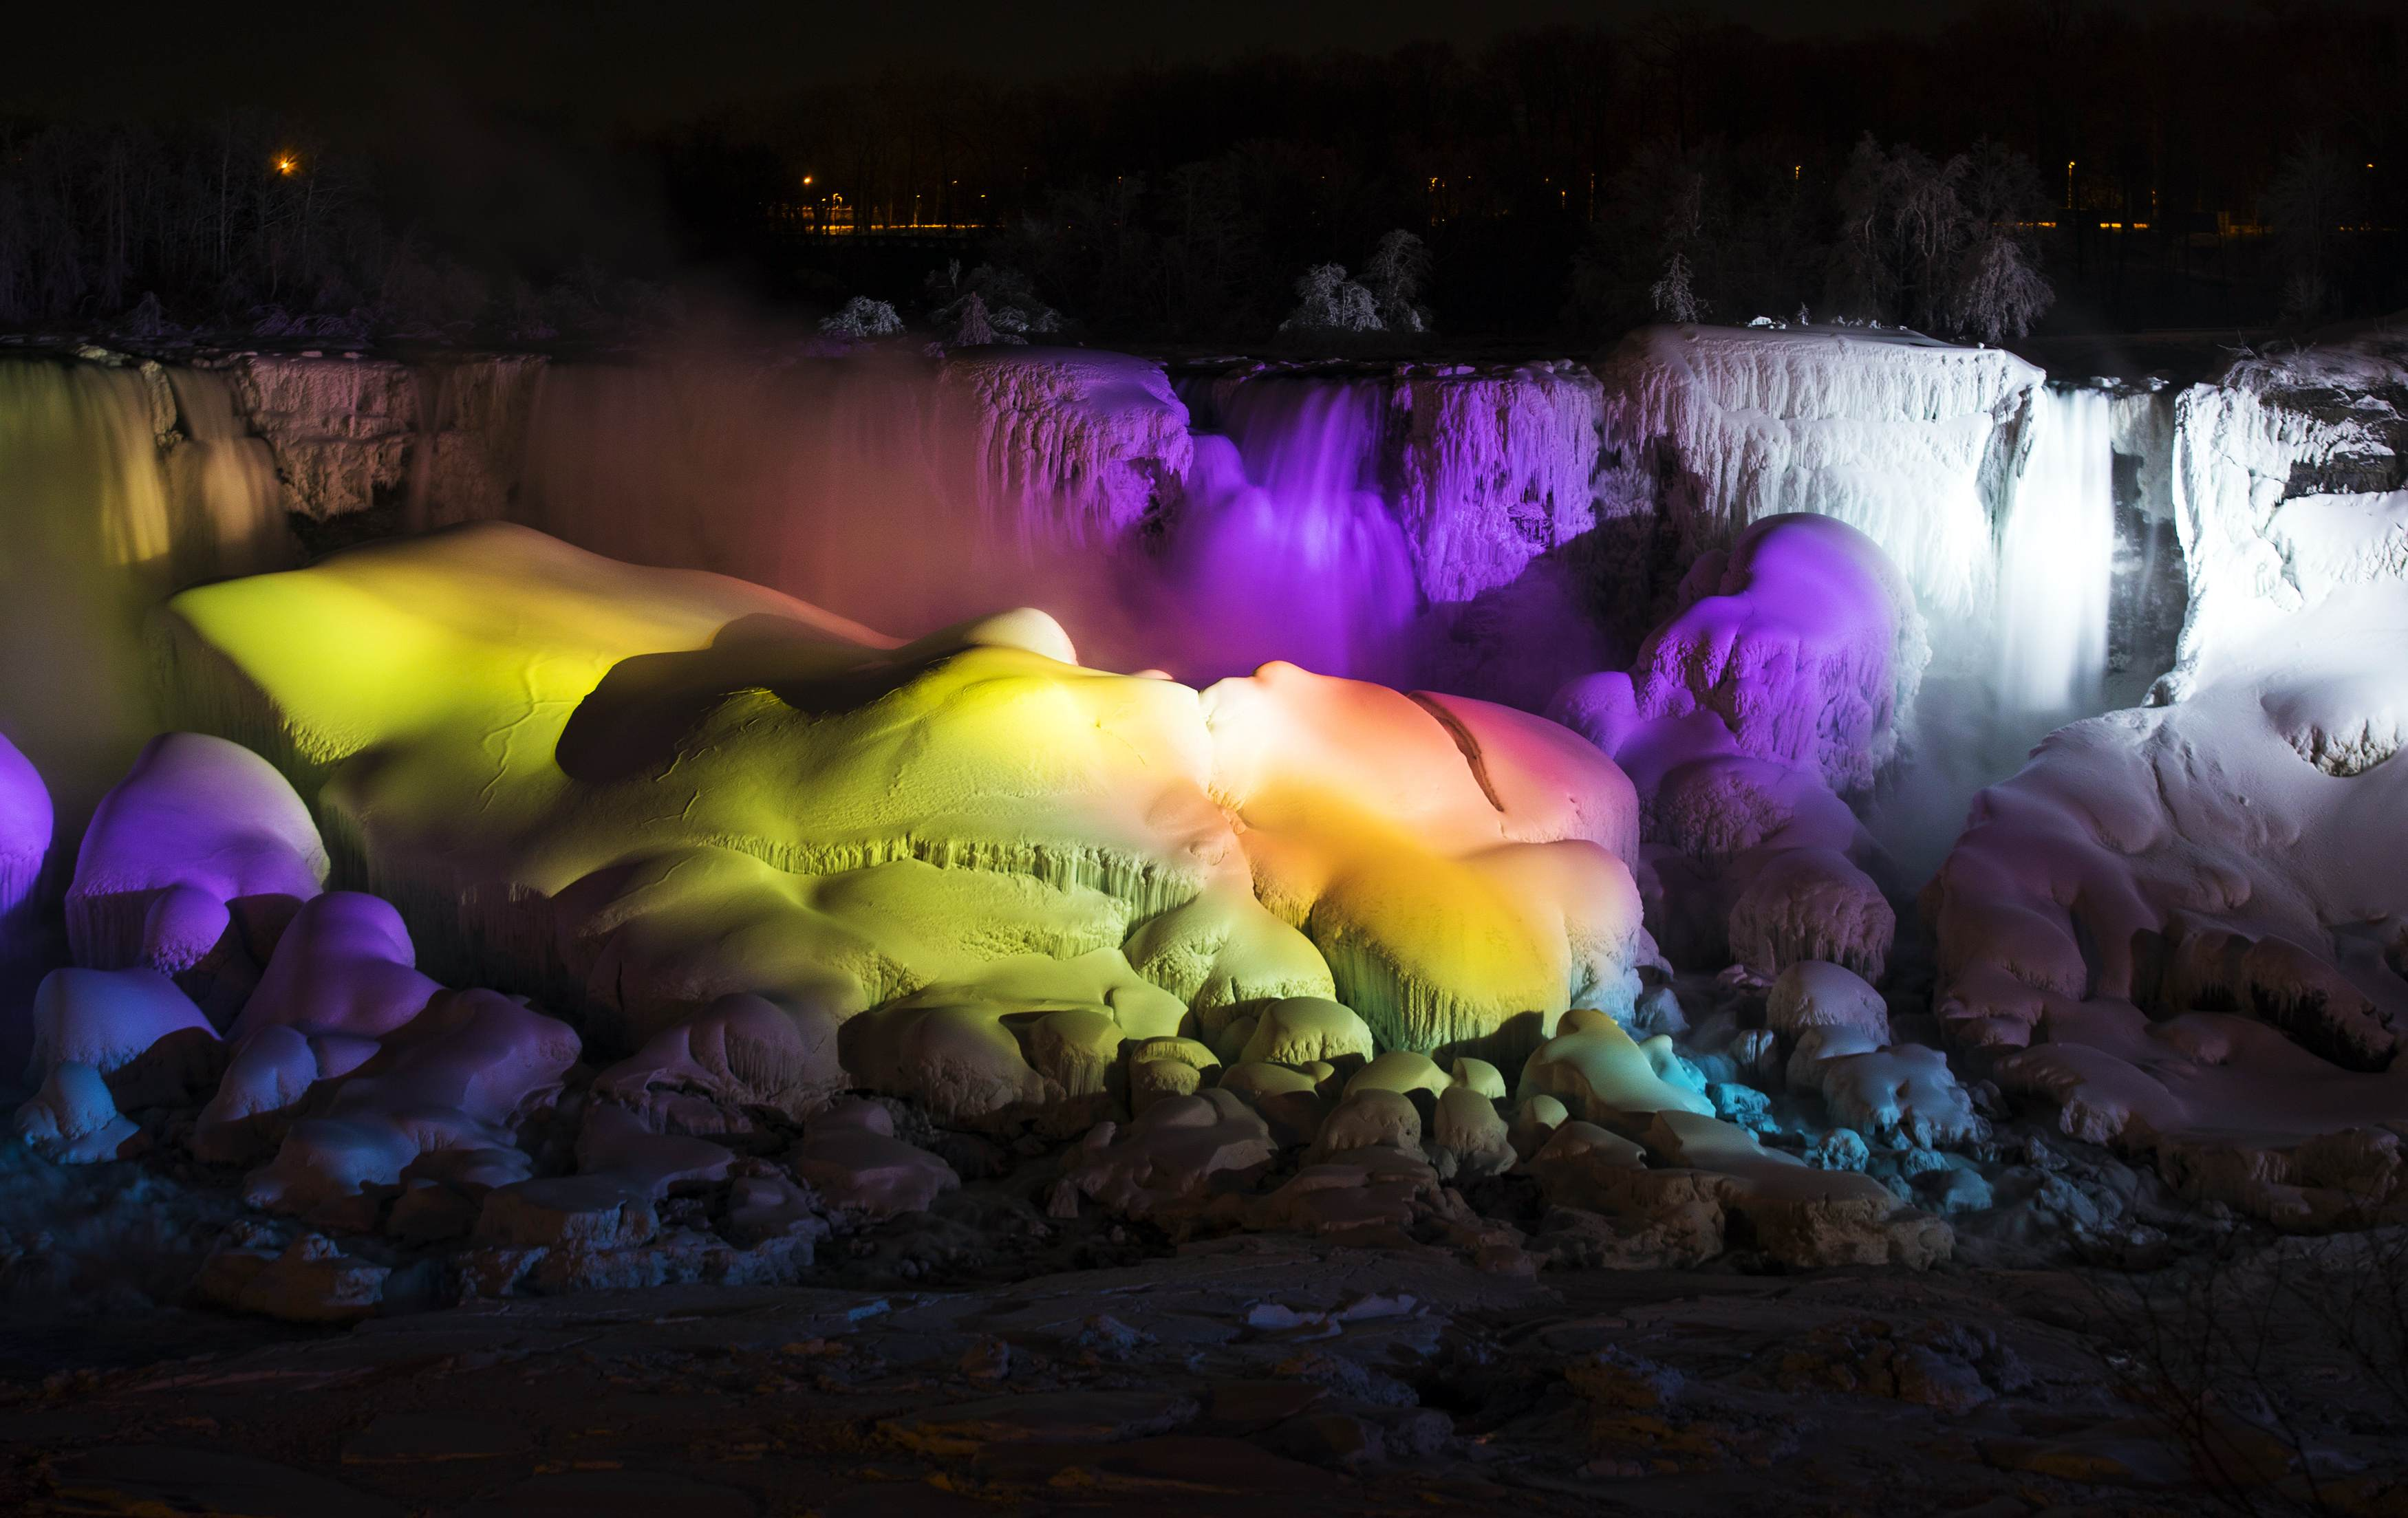 'Frozen' technicolor Niagara Falls lit up in the night